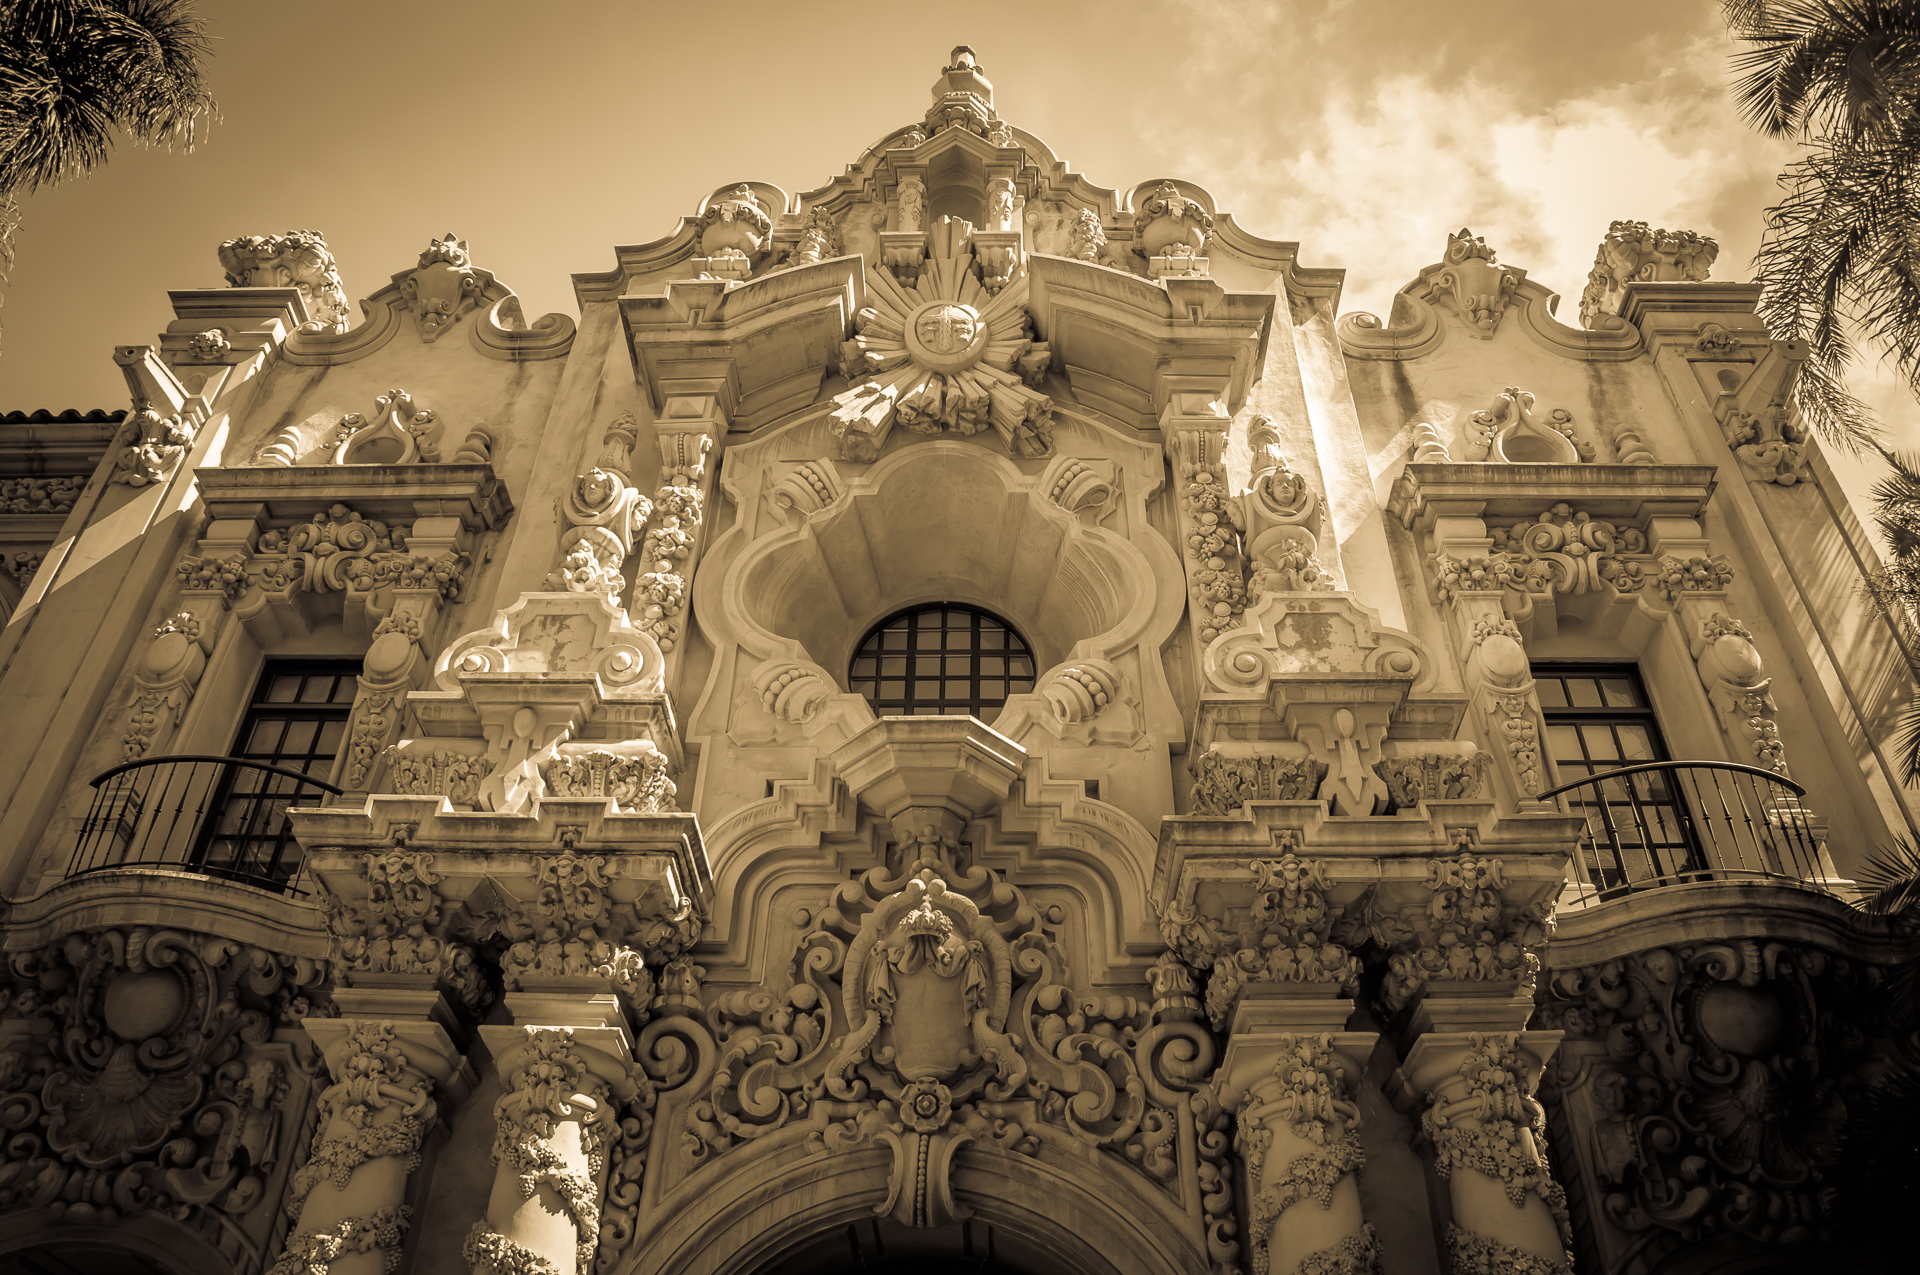 Arichitecture in Balboa Park